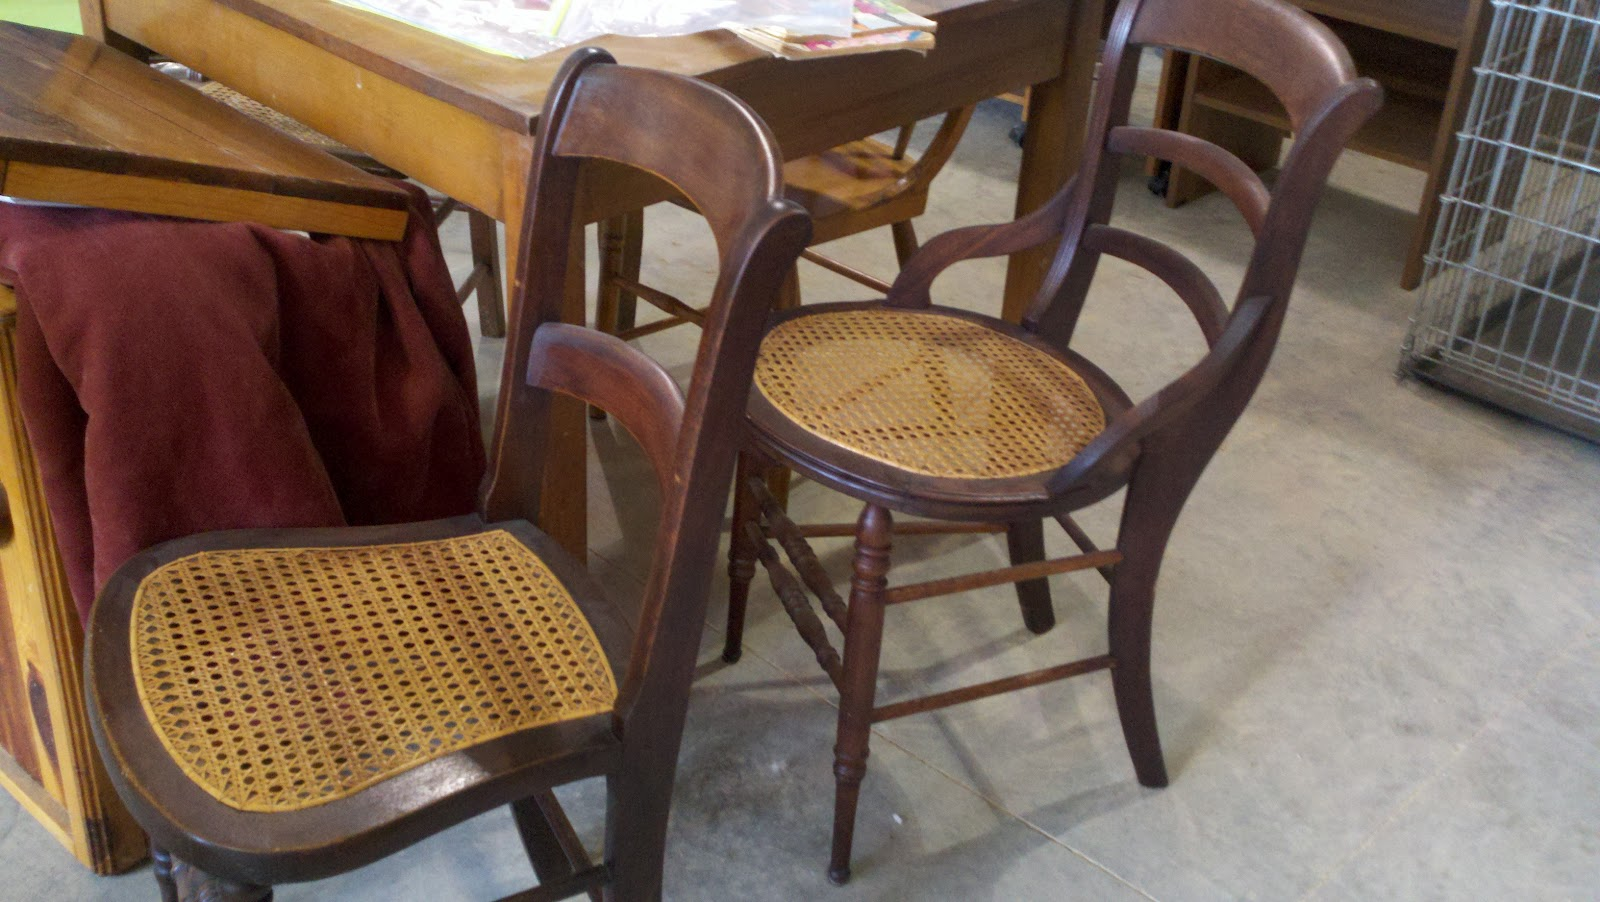 Nice Very Impressive Portraiture Of Antique Cane Seat Walnut (I Think) Chairs In  Pretty Darn